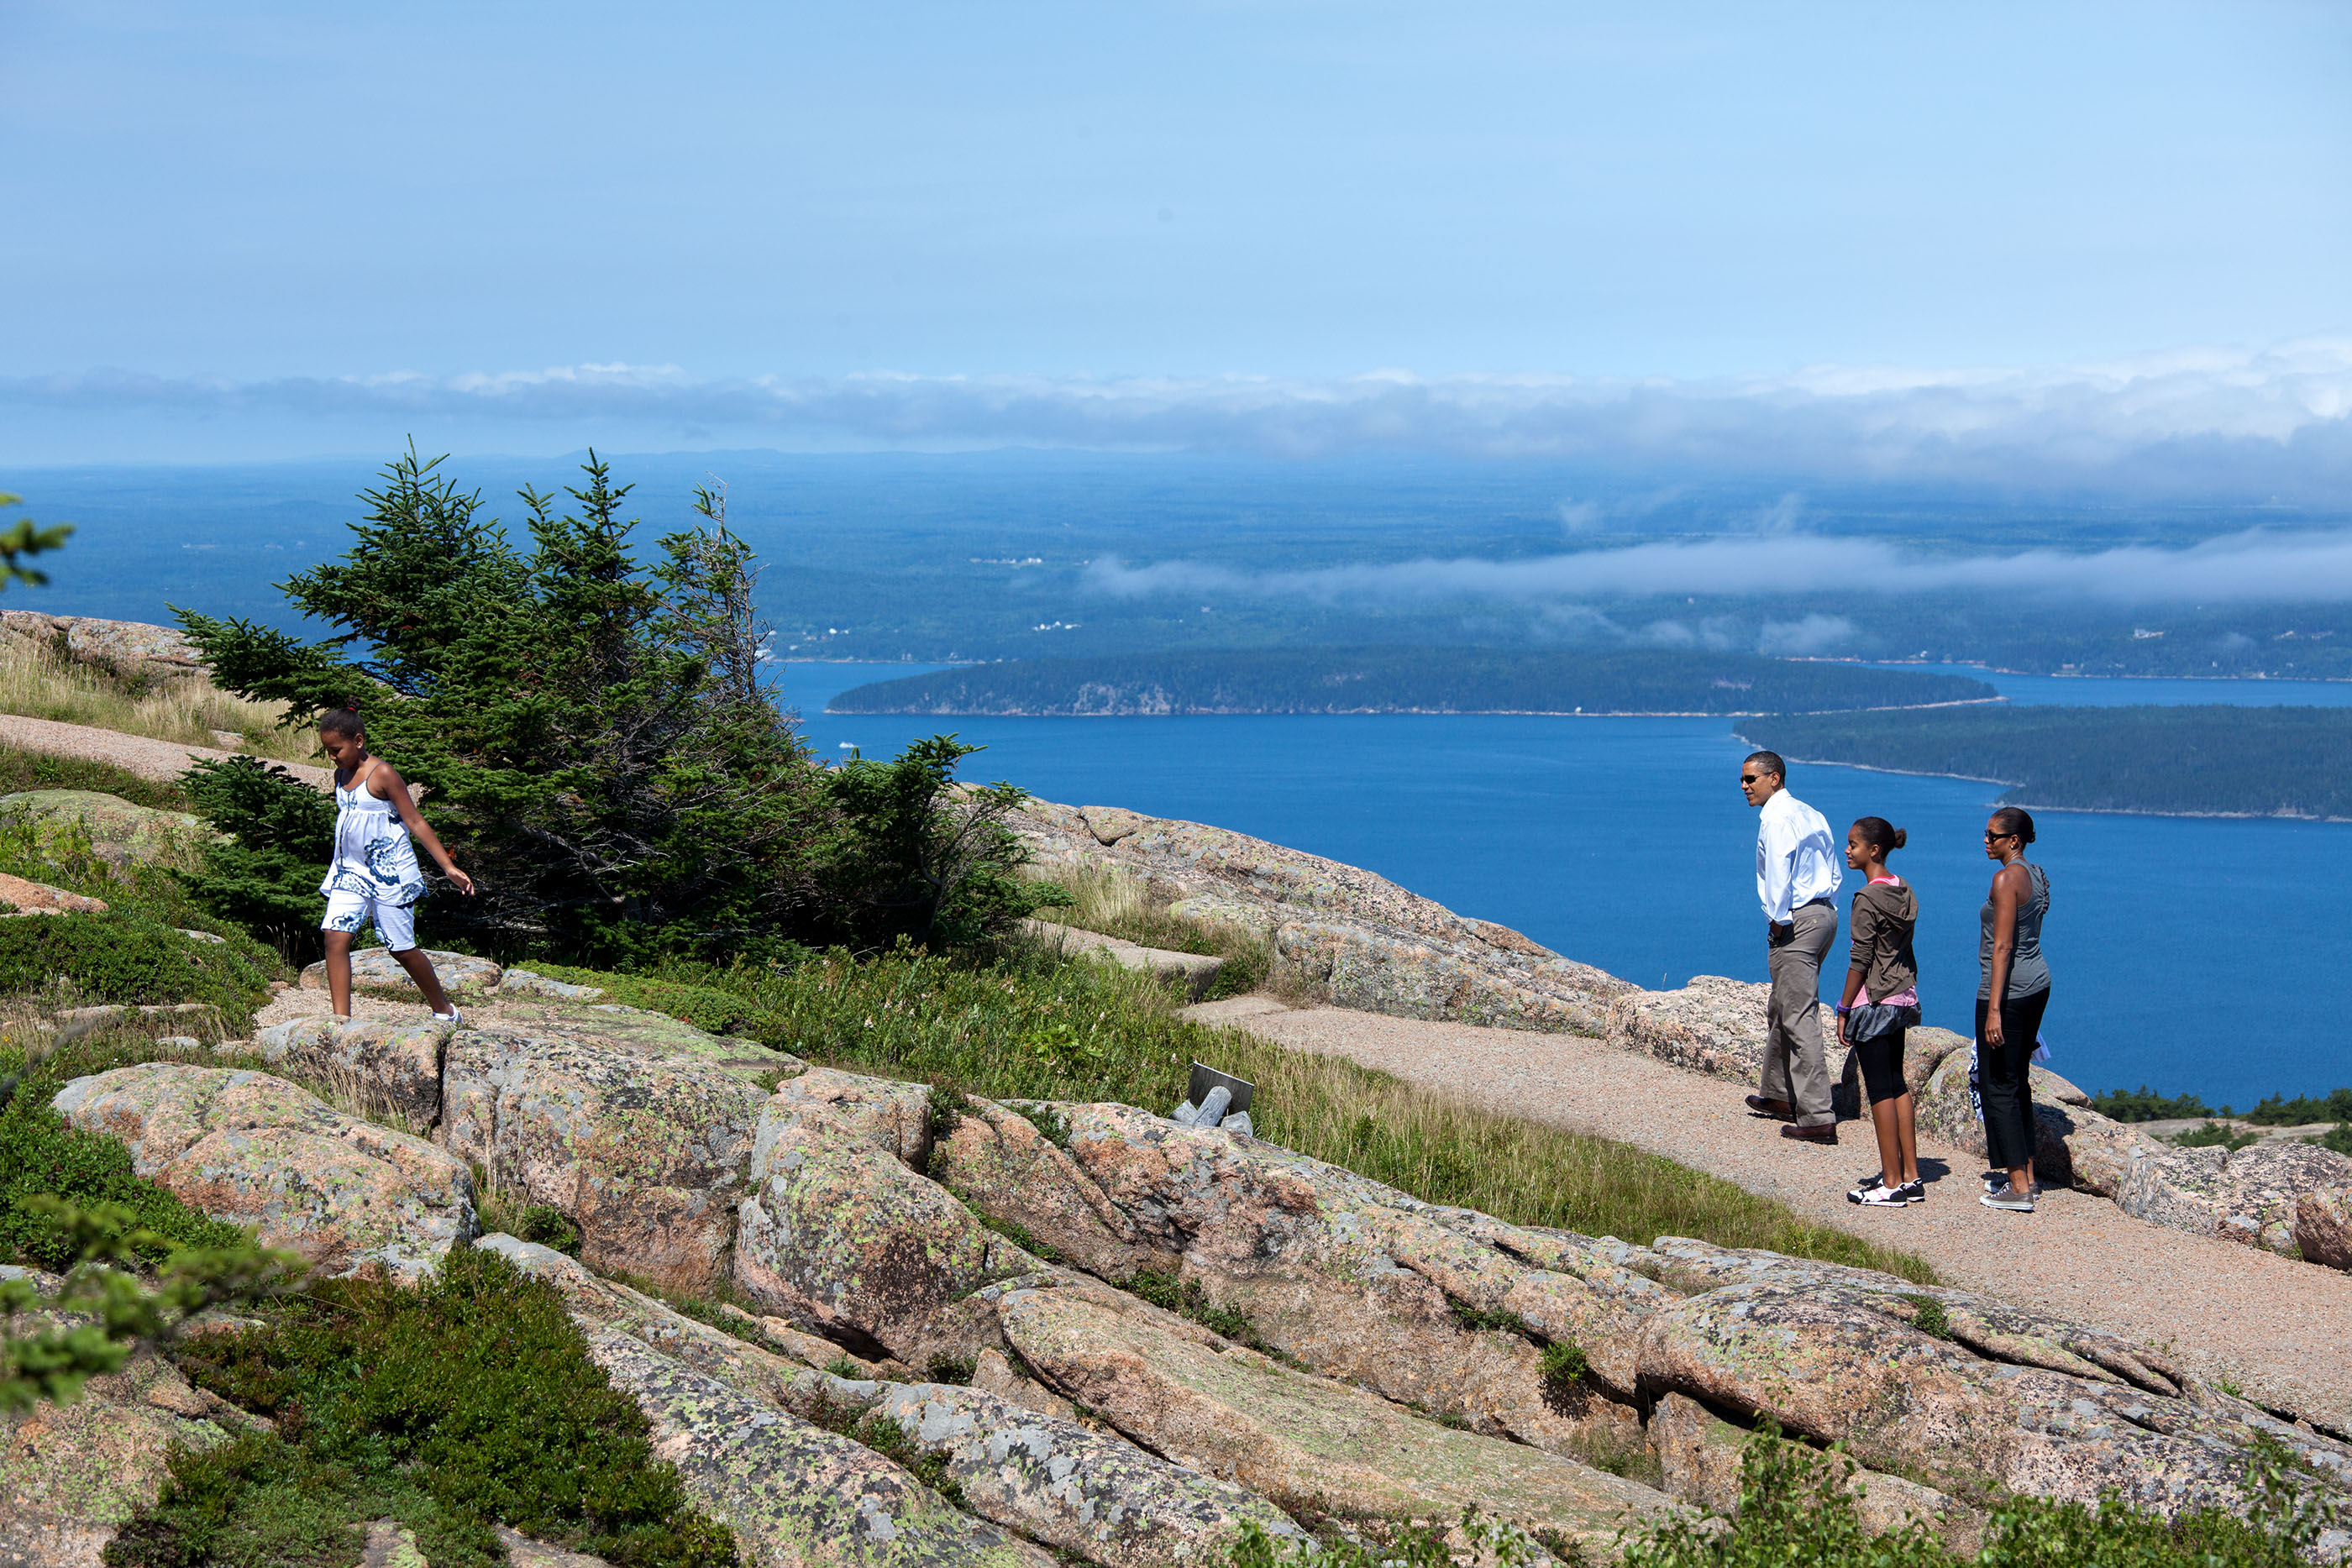 Maine, July 16, 2010. Hiking with the family on Cadillac Mountain at Acadia National Park. (Official White House Photo by Pete Souza)